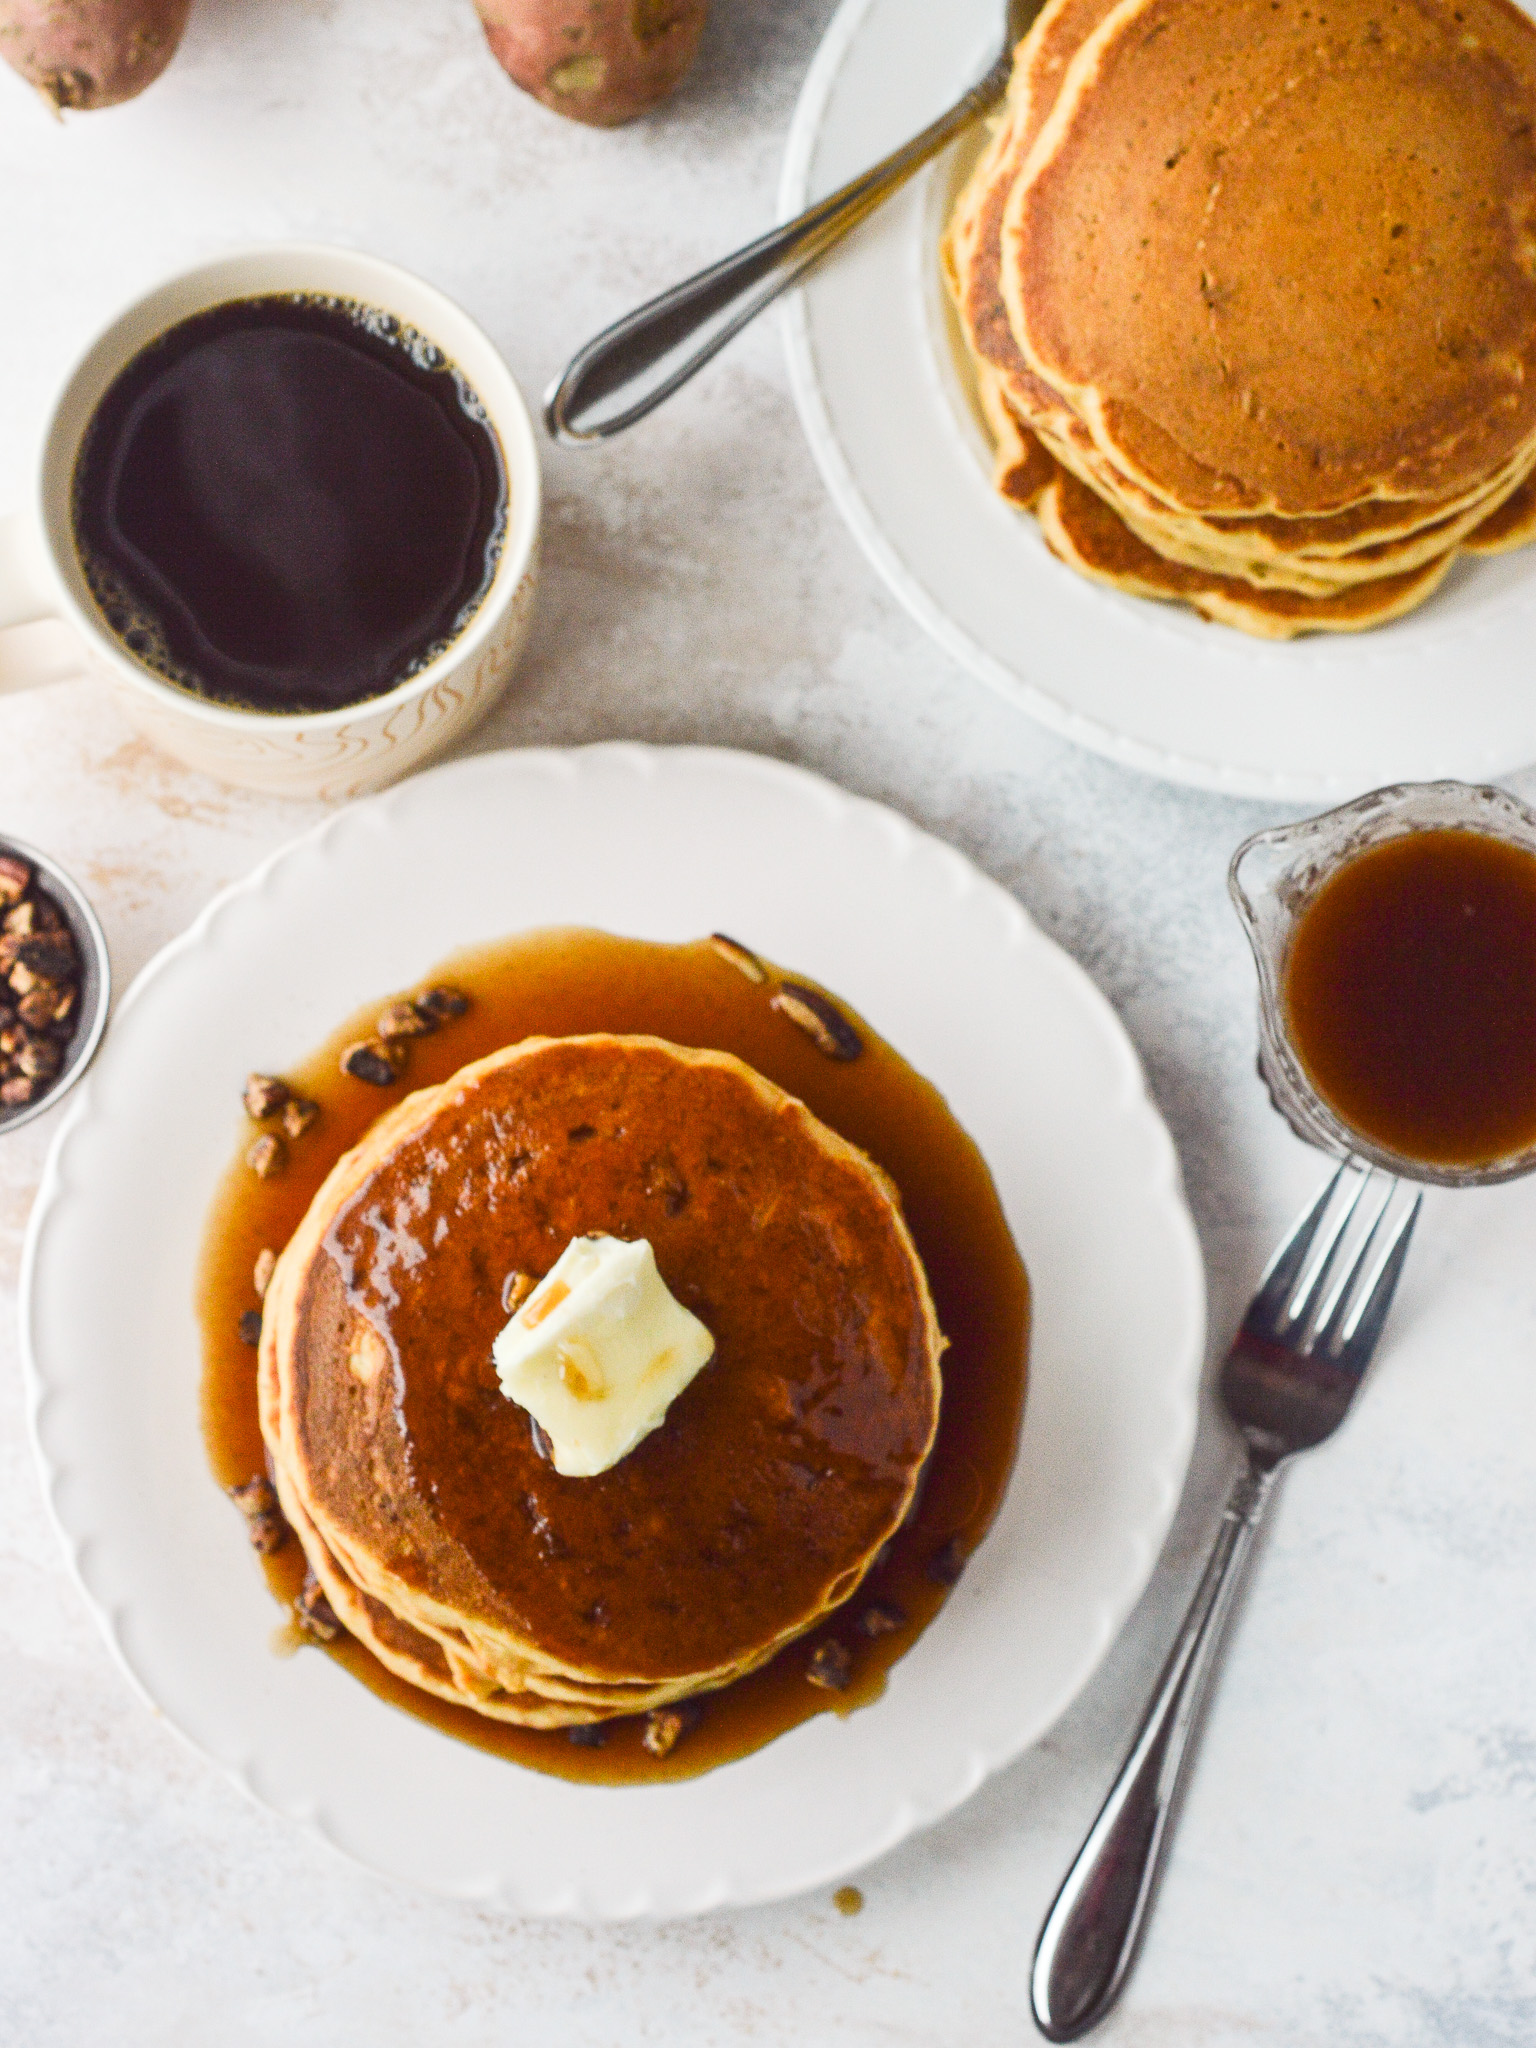 Overhead table-scape of a pancake breakfast with coffee and a carafe of cinnamon syrup